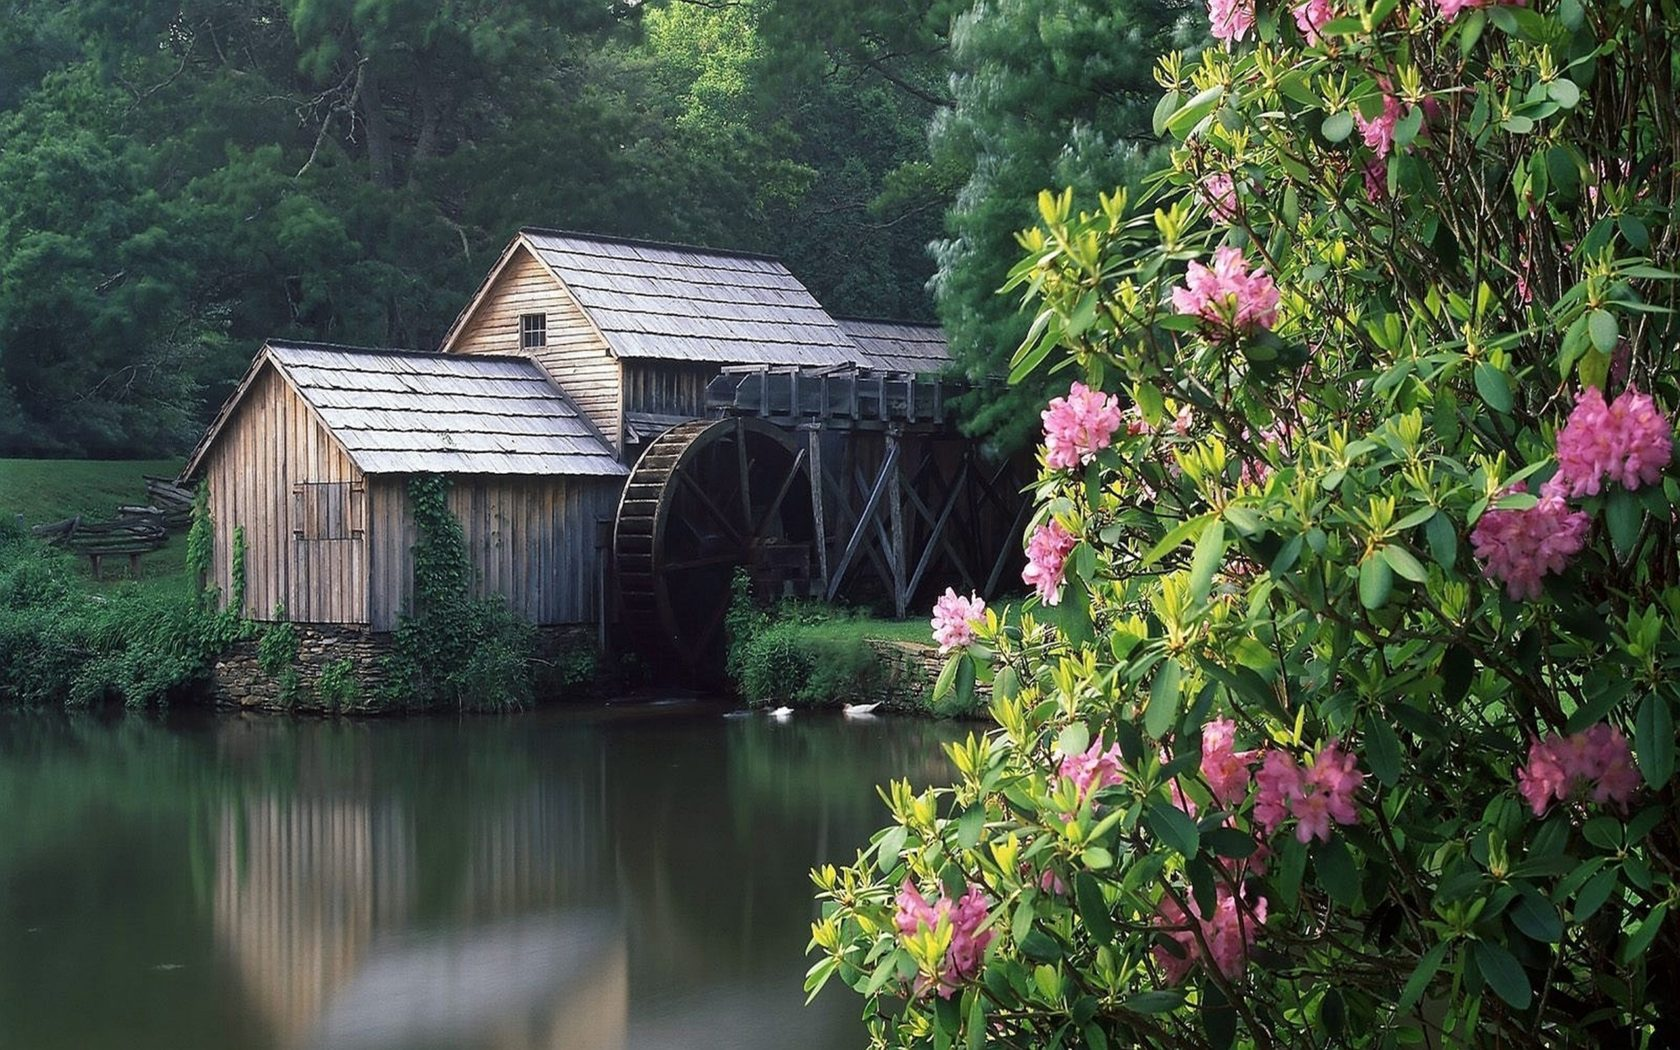 Fall Moving Wallpaper Lovely Grist Mill 295512 Wallpapers13 Com